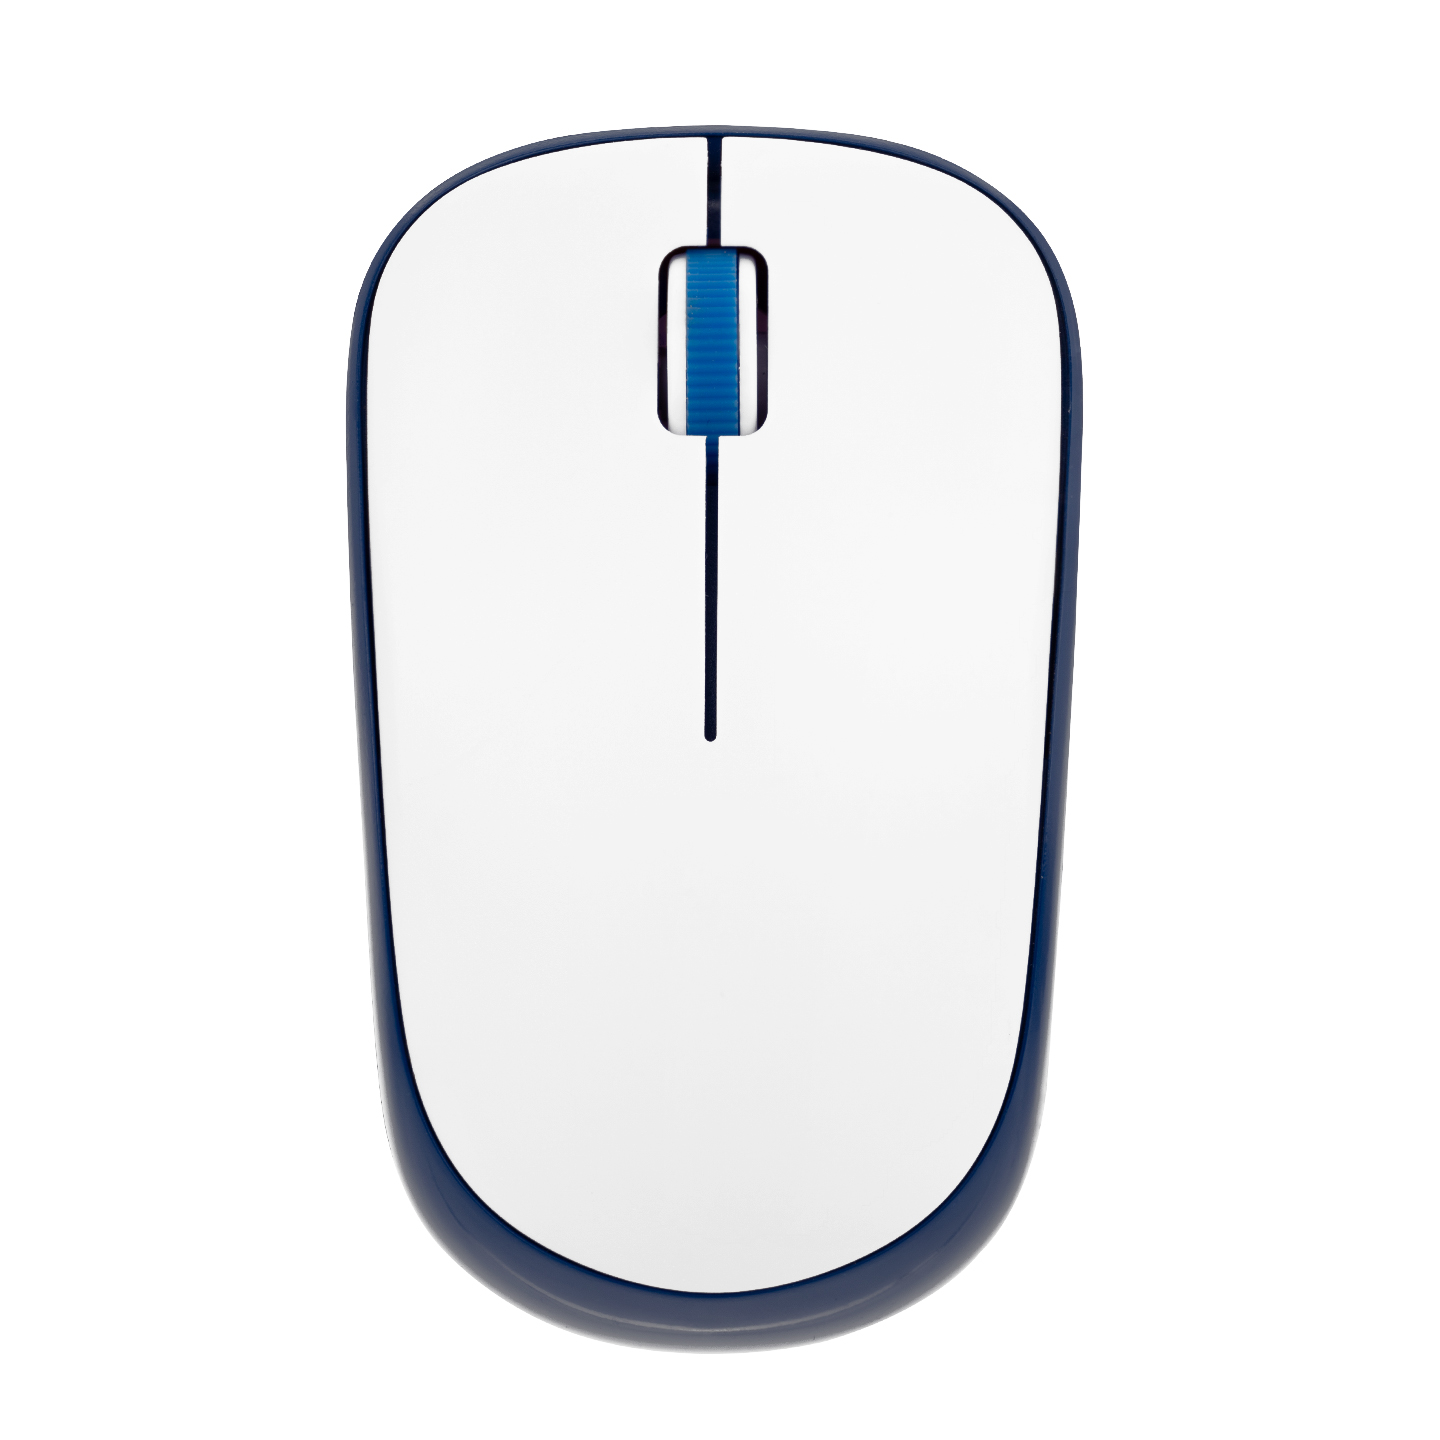 Everest SM-833 Usb Beyaz/Turkuaz 1200dpi Optik Kablosuz Mouse